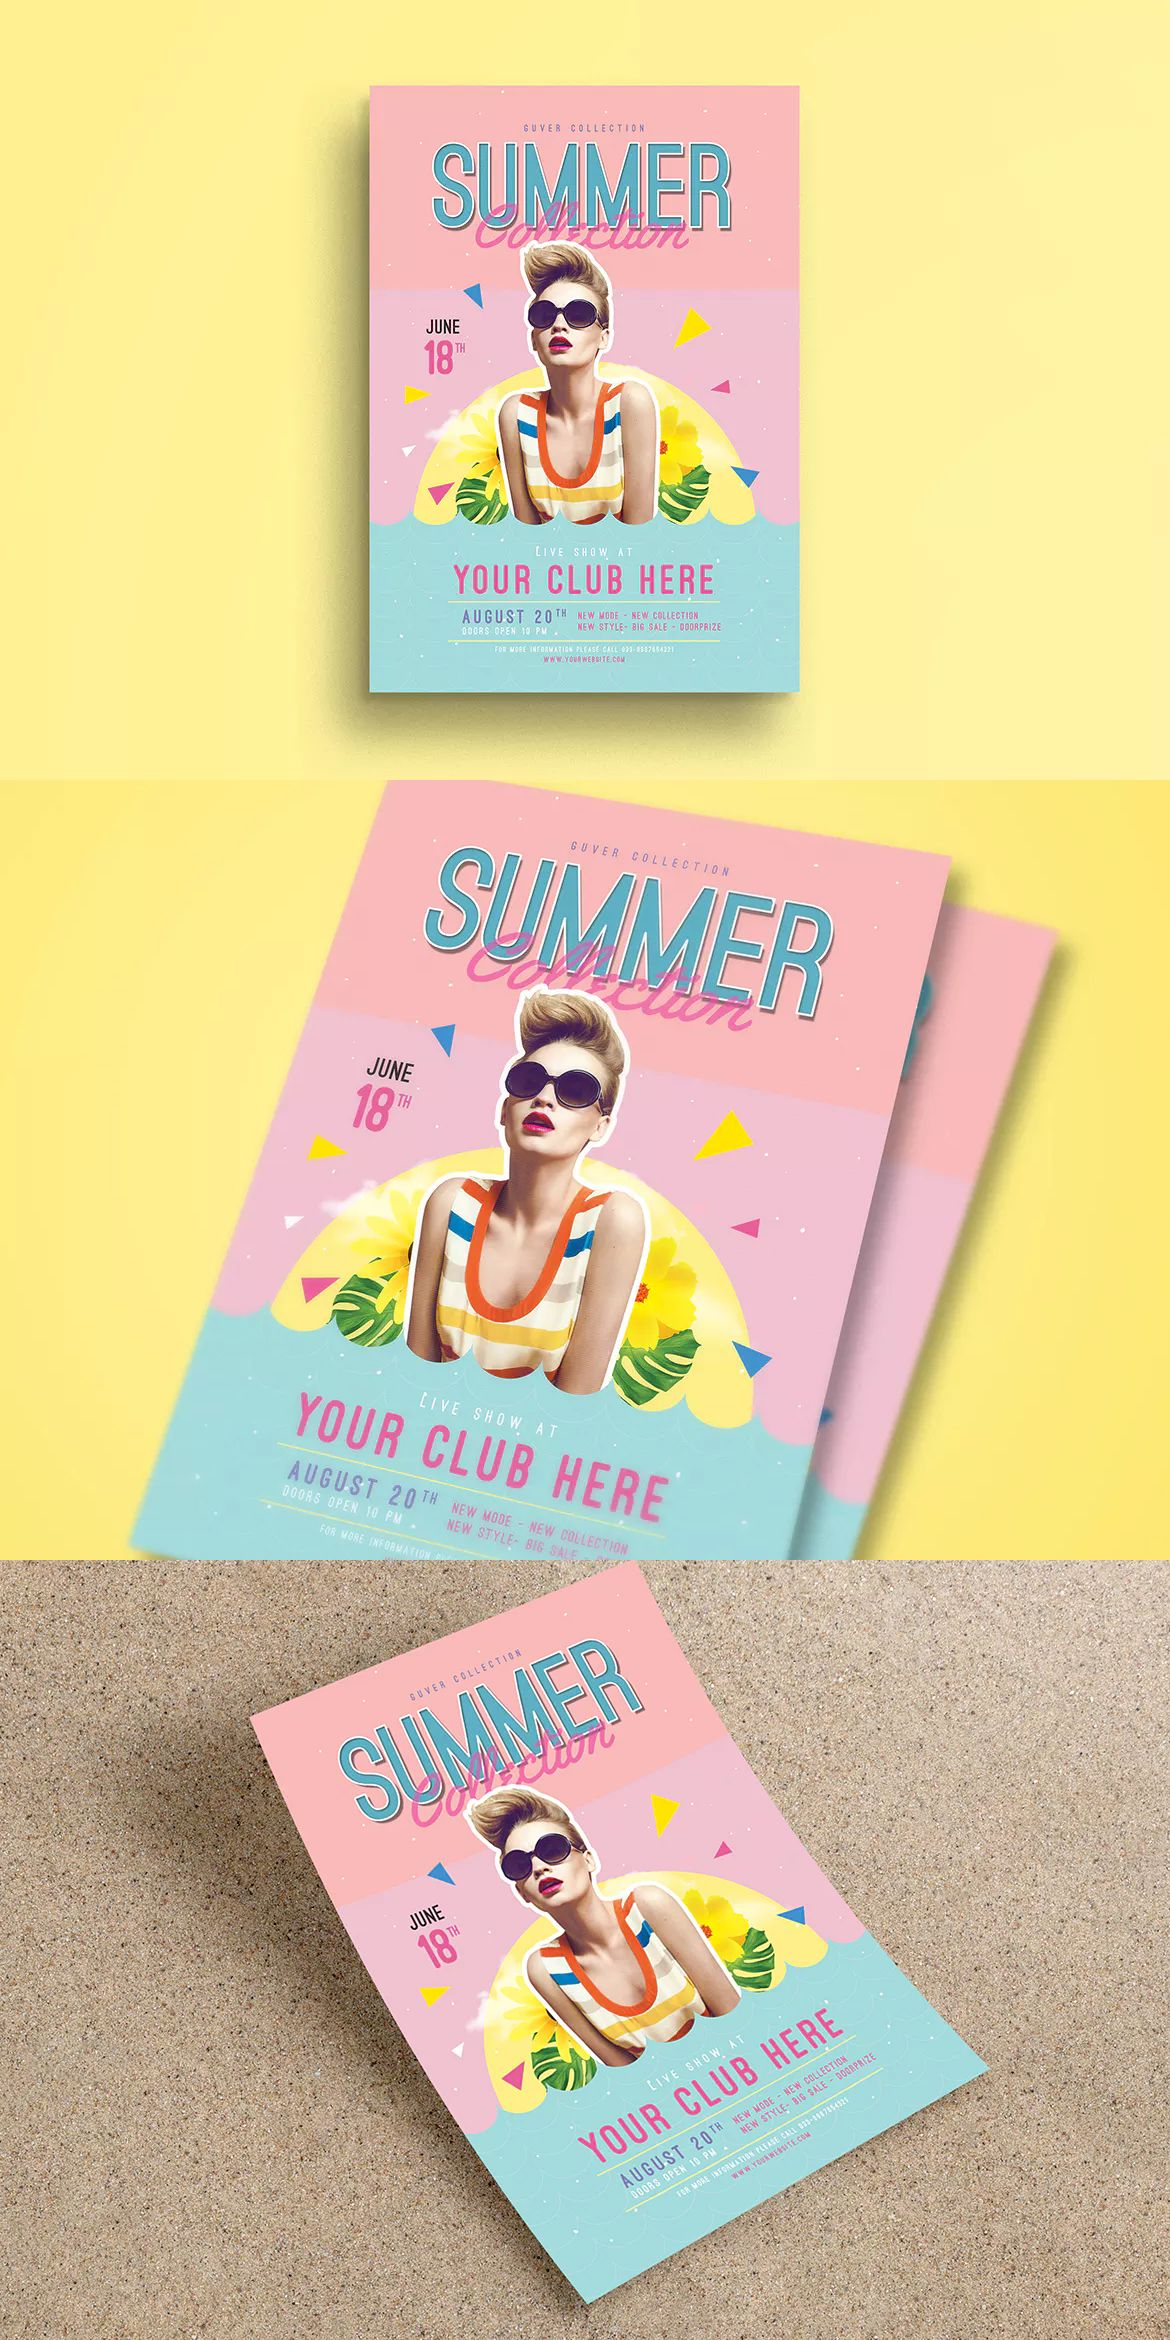 Summer event flyer template psd a4 flyer design templates summer event flyer template psd a4 maxwellsz